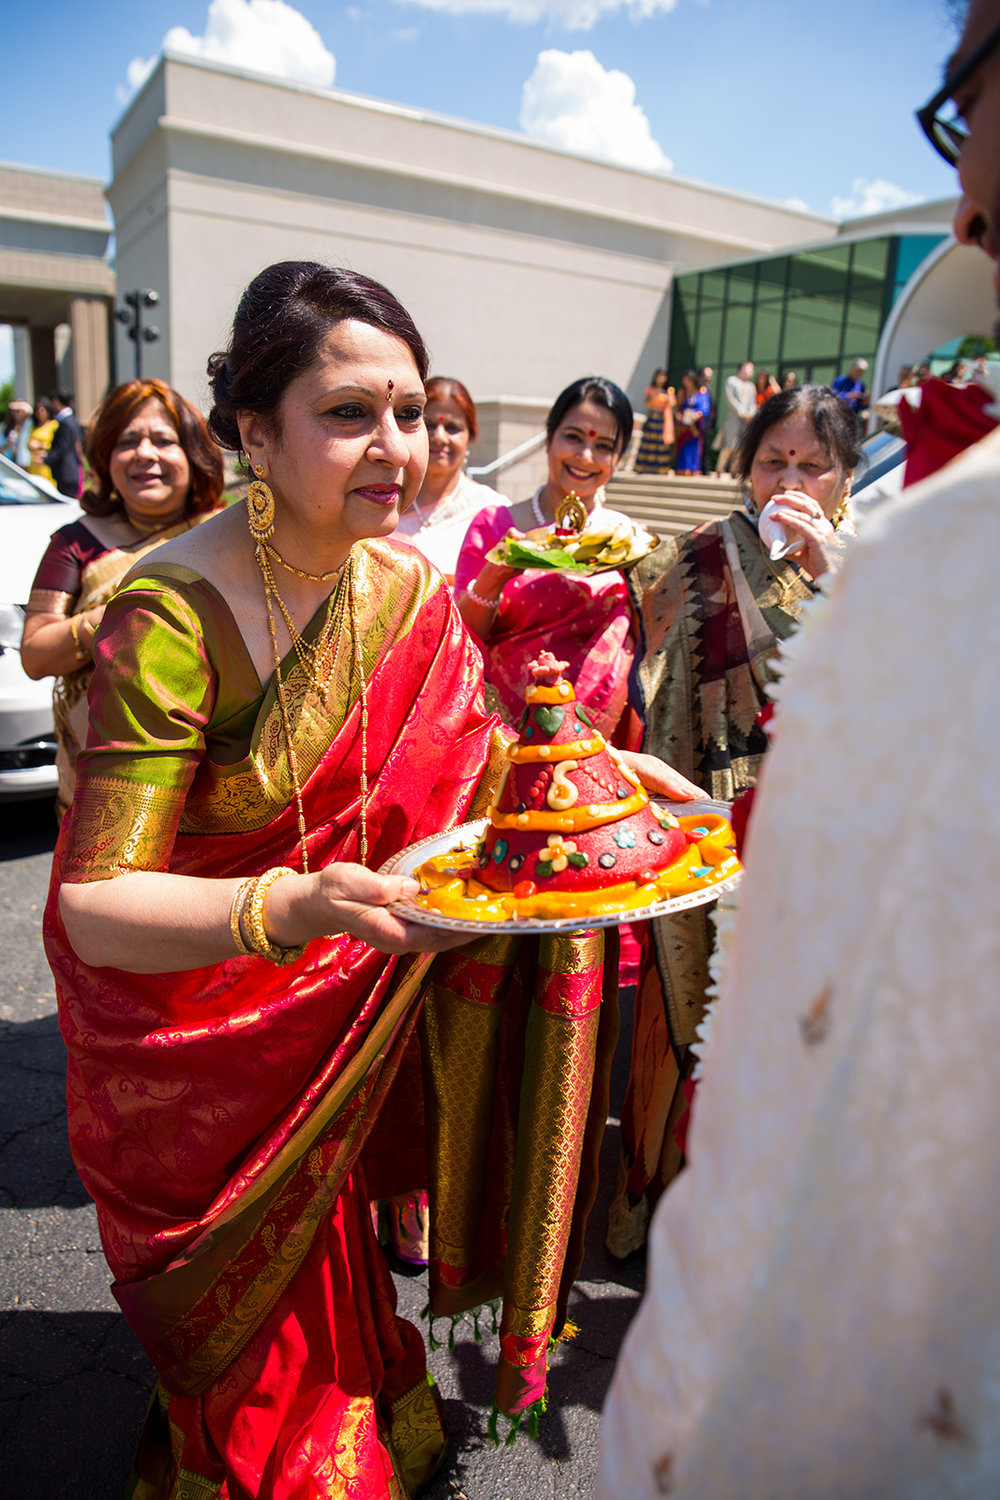 Le Cape Weddings - South Asian Wedding - Ishani and Sidhart - Welcome Ceremony-11.jpg